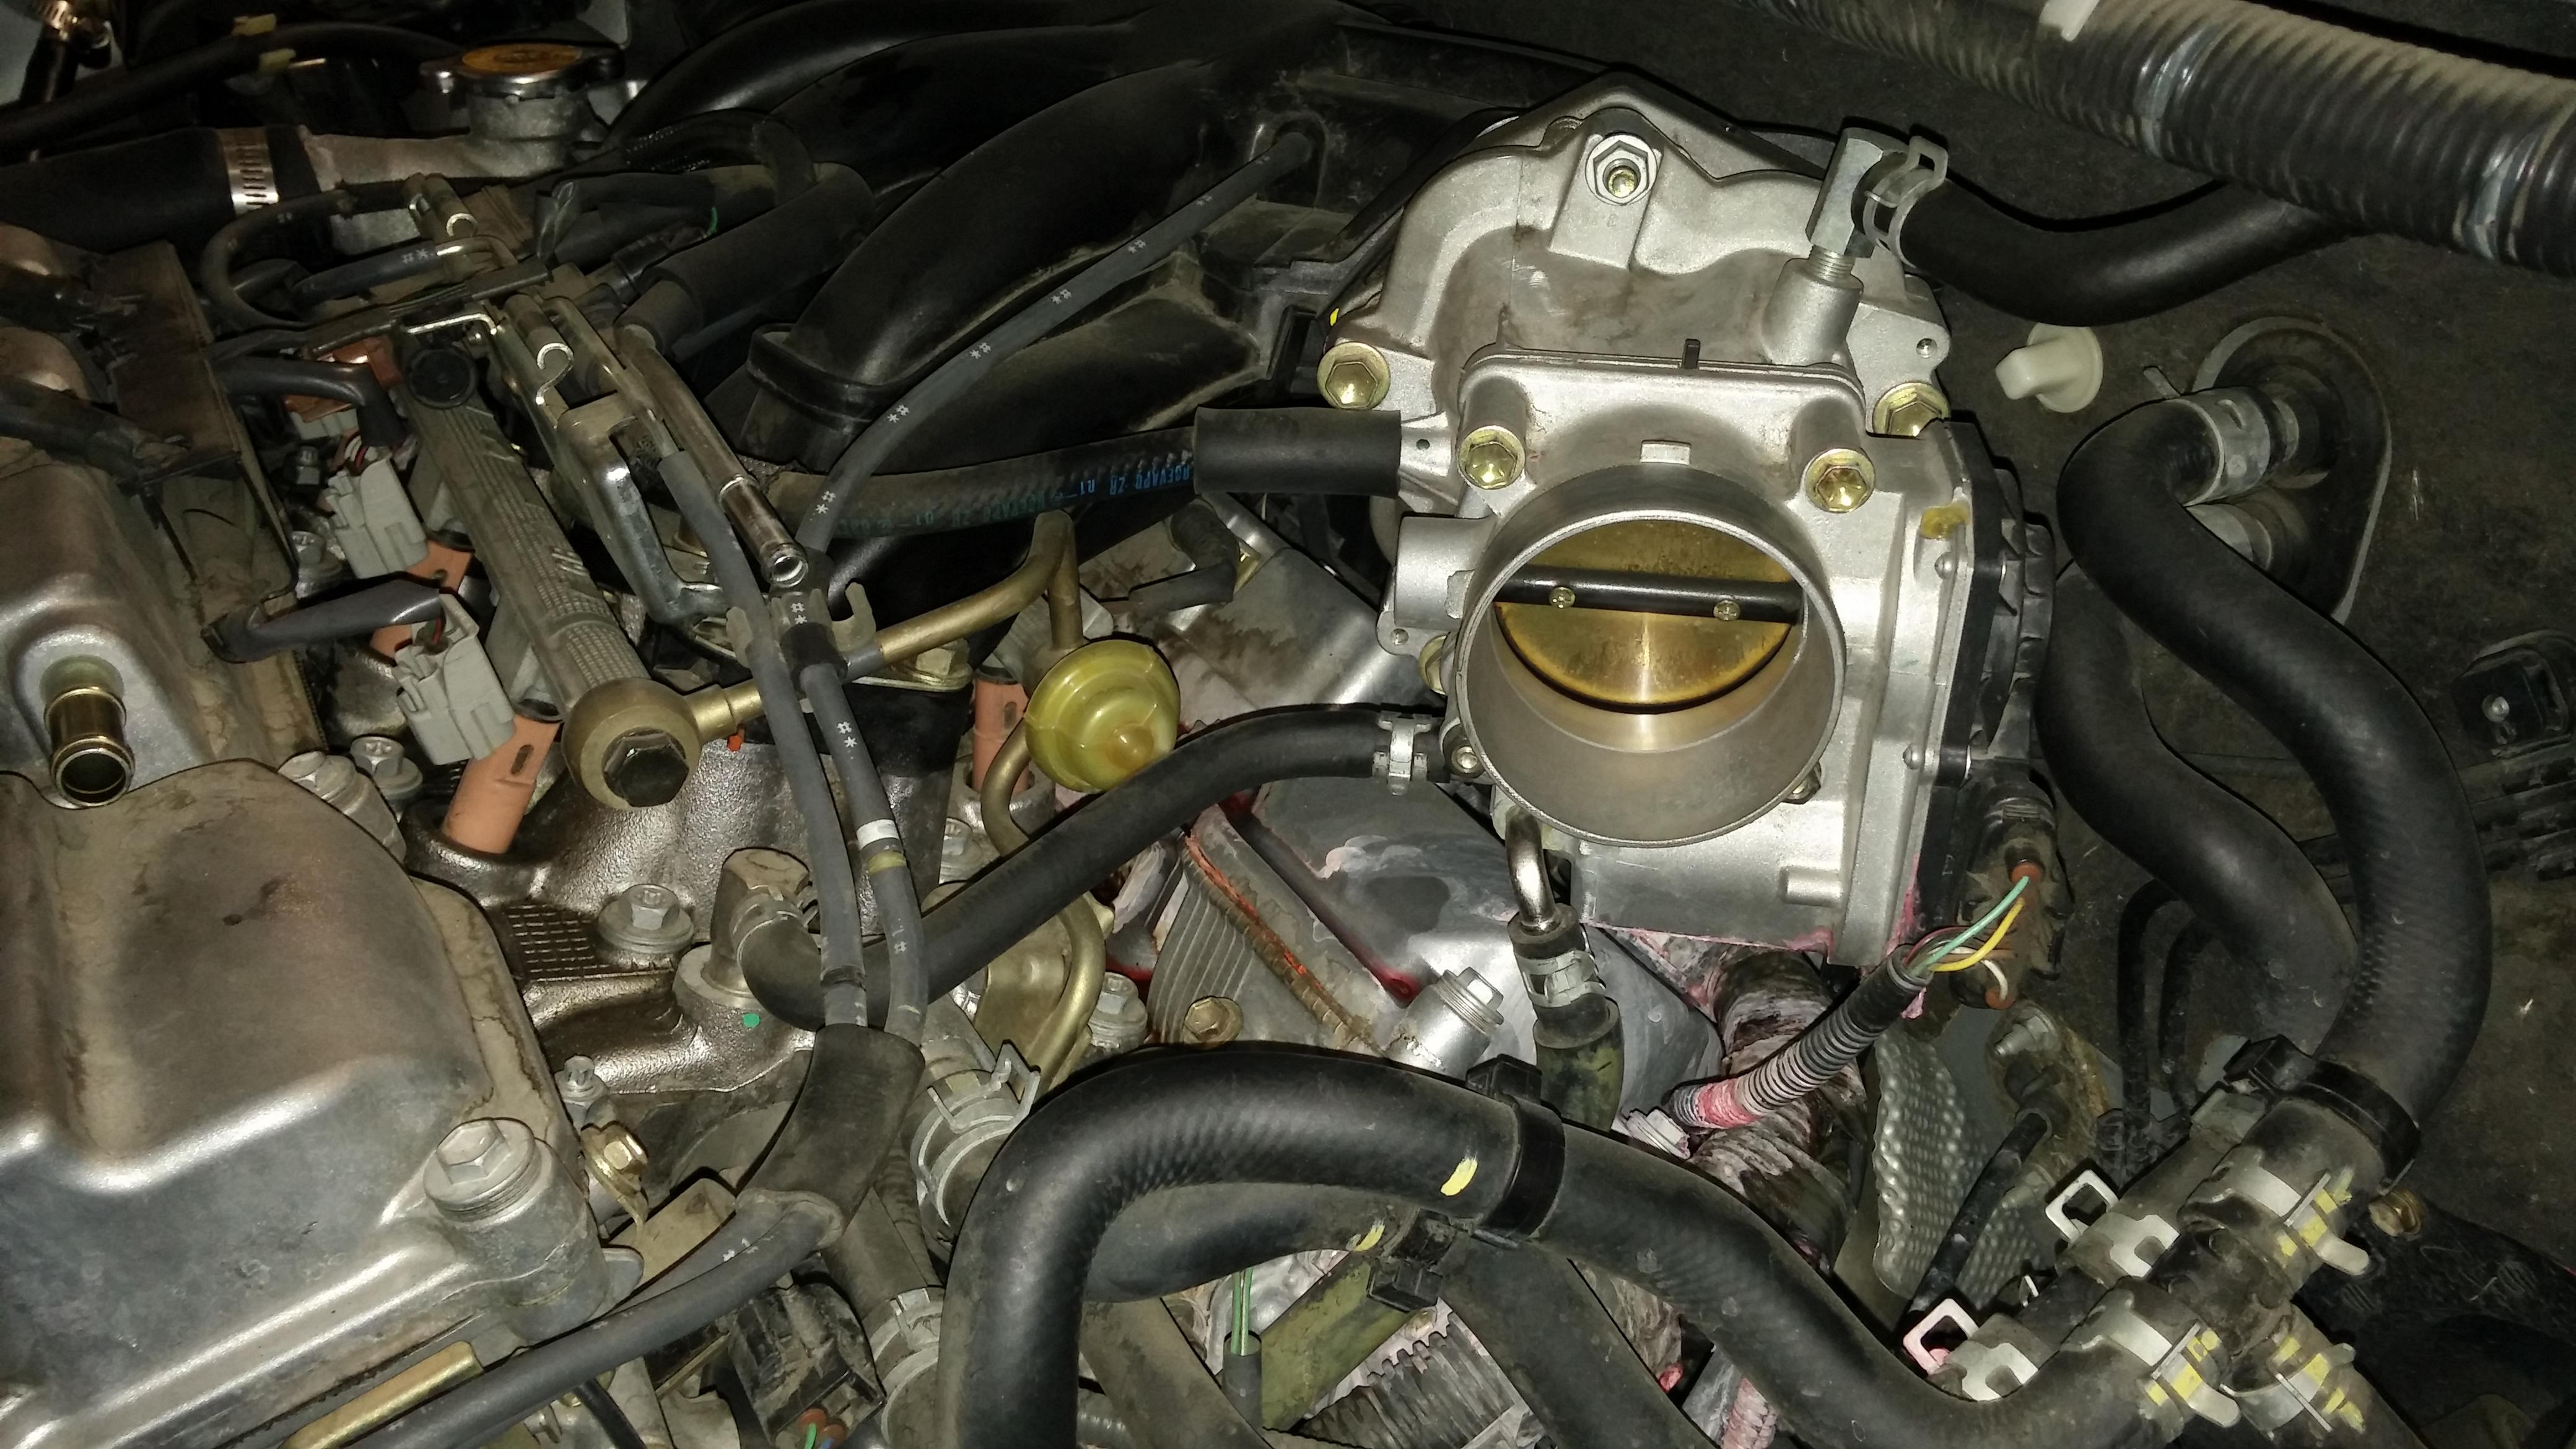 2004 Siena Coolant Leak Pic Included Toyota Nation